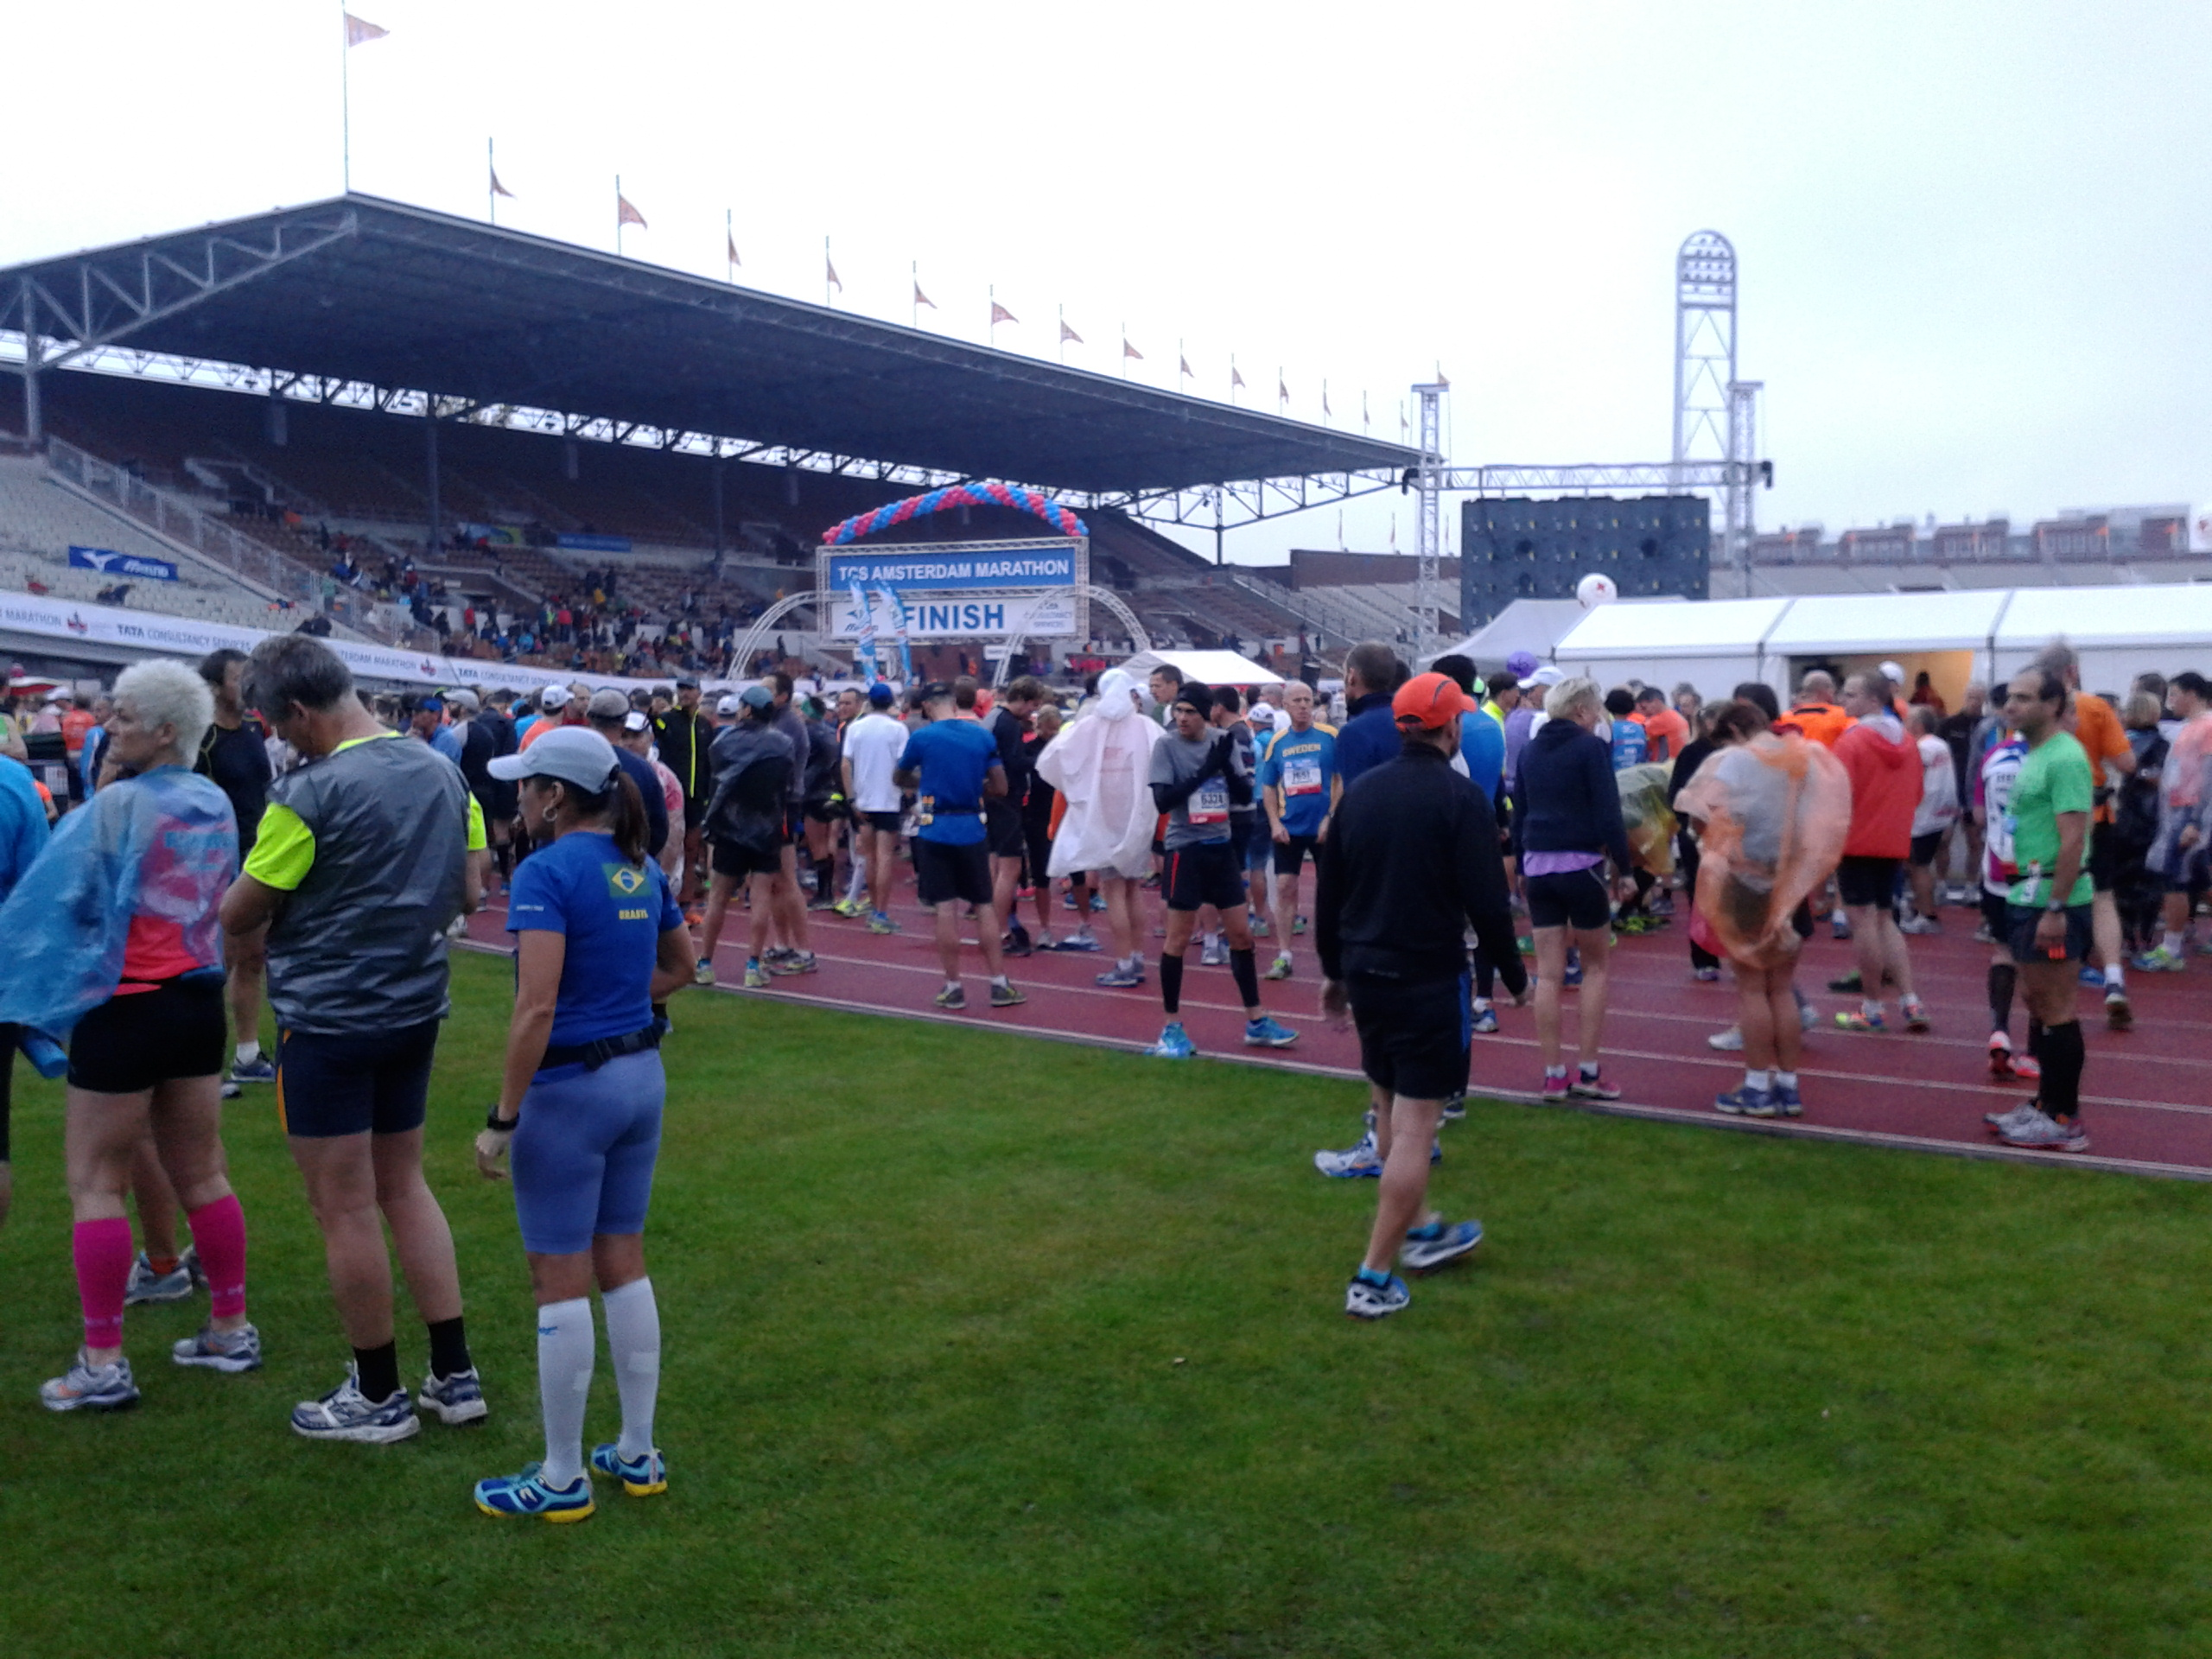 Runners inside Amsterdam Olympic stadium